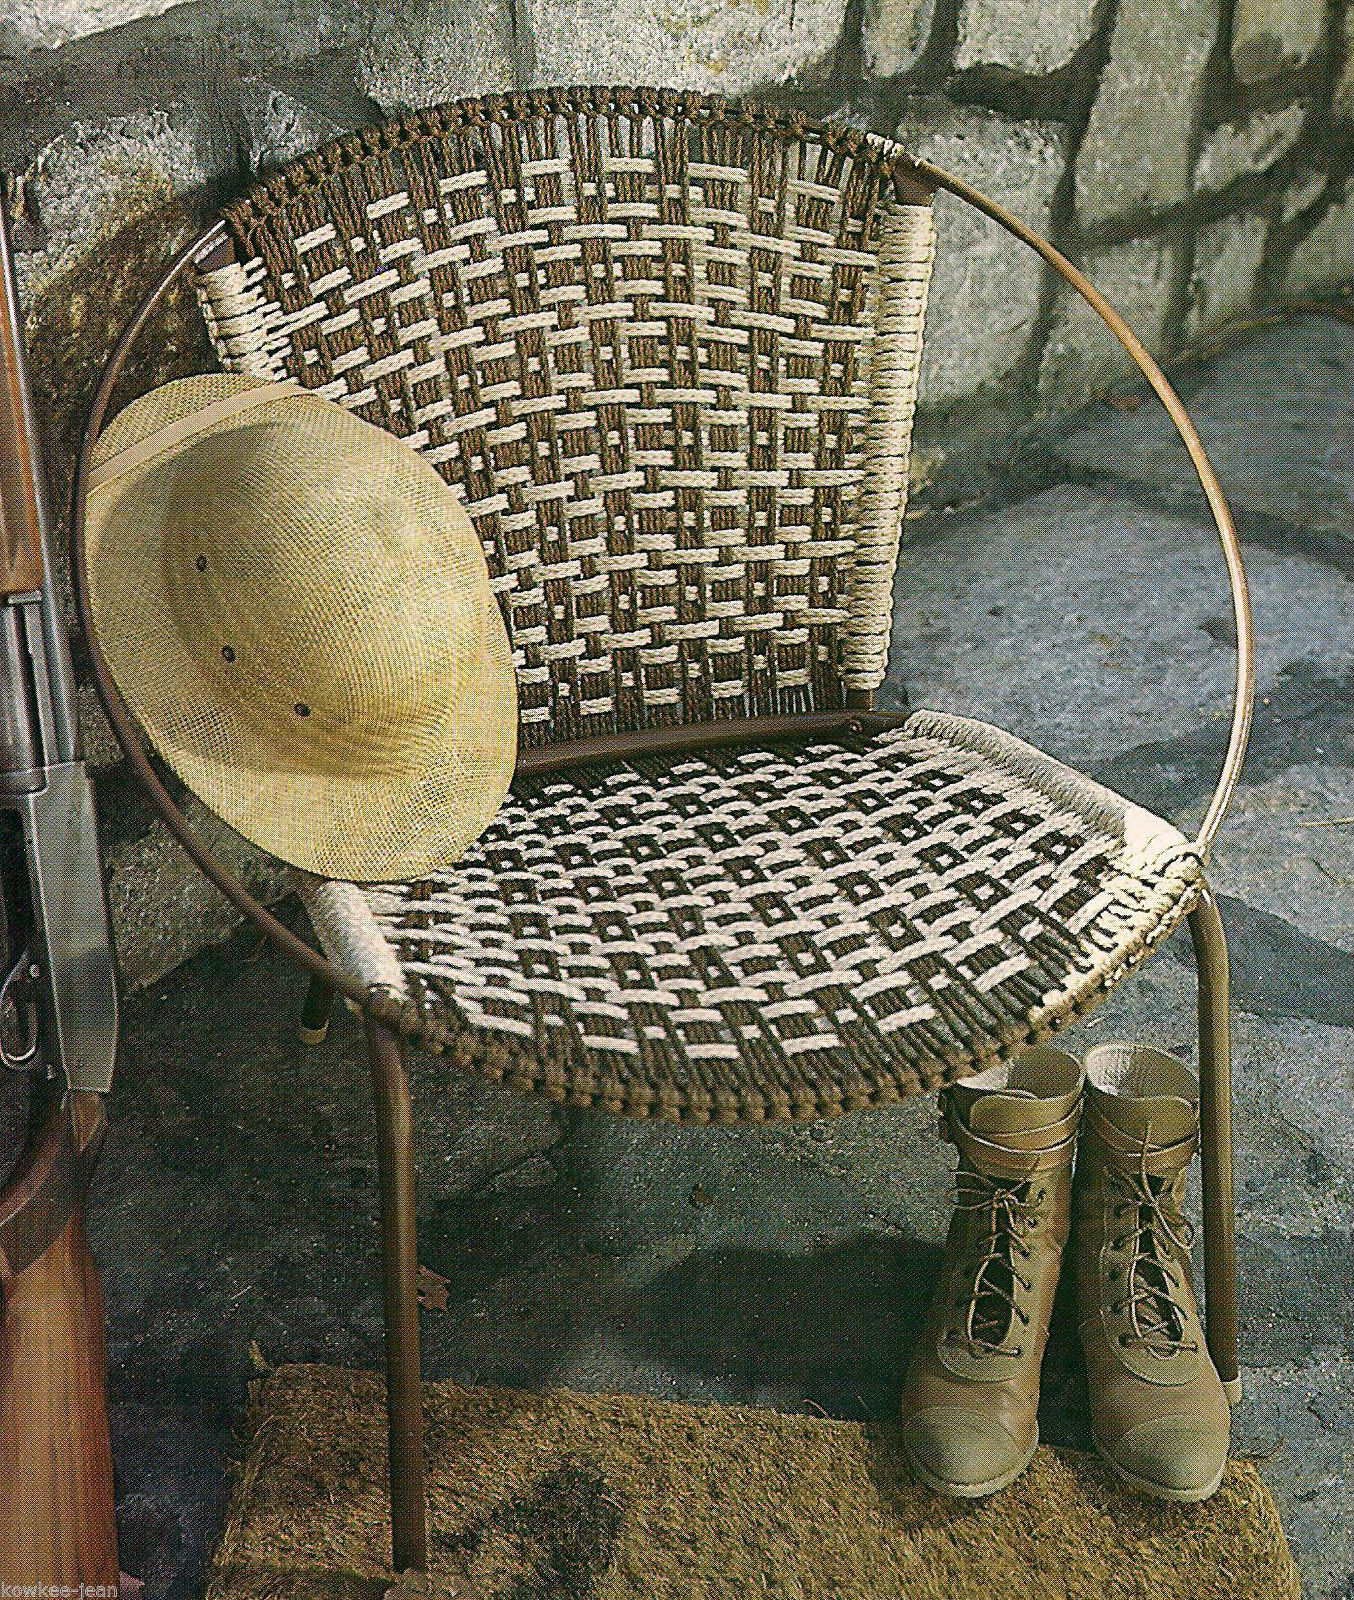 Macrame Chairs For Country Living Lawn Chair And 22 Similar Items